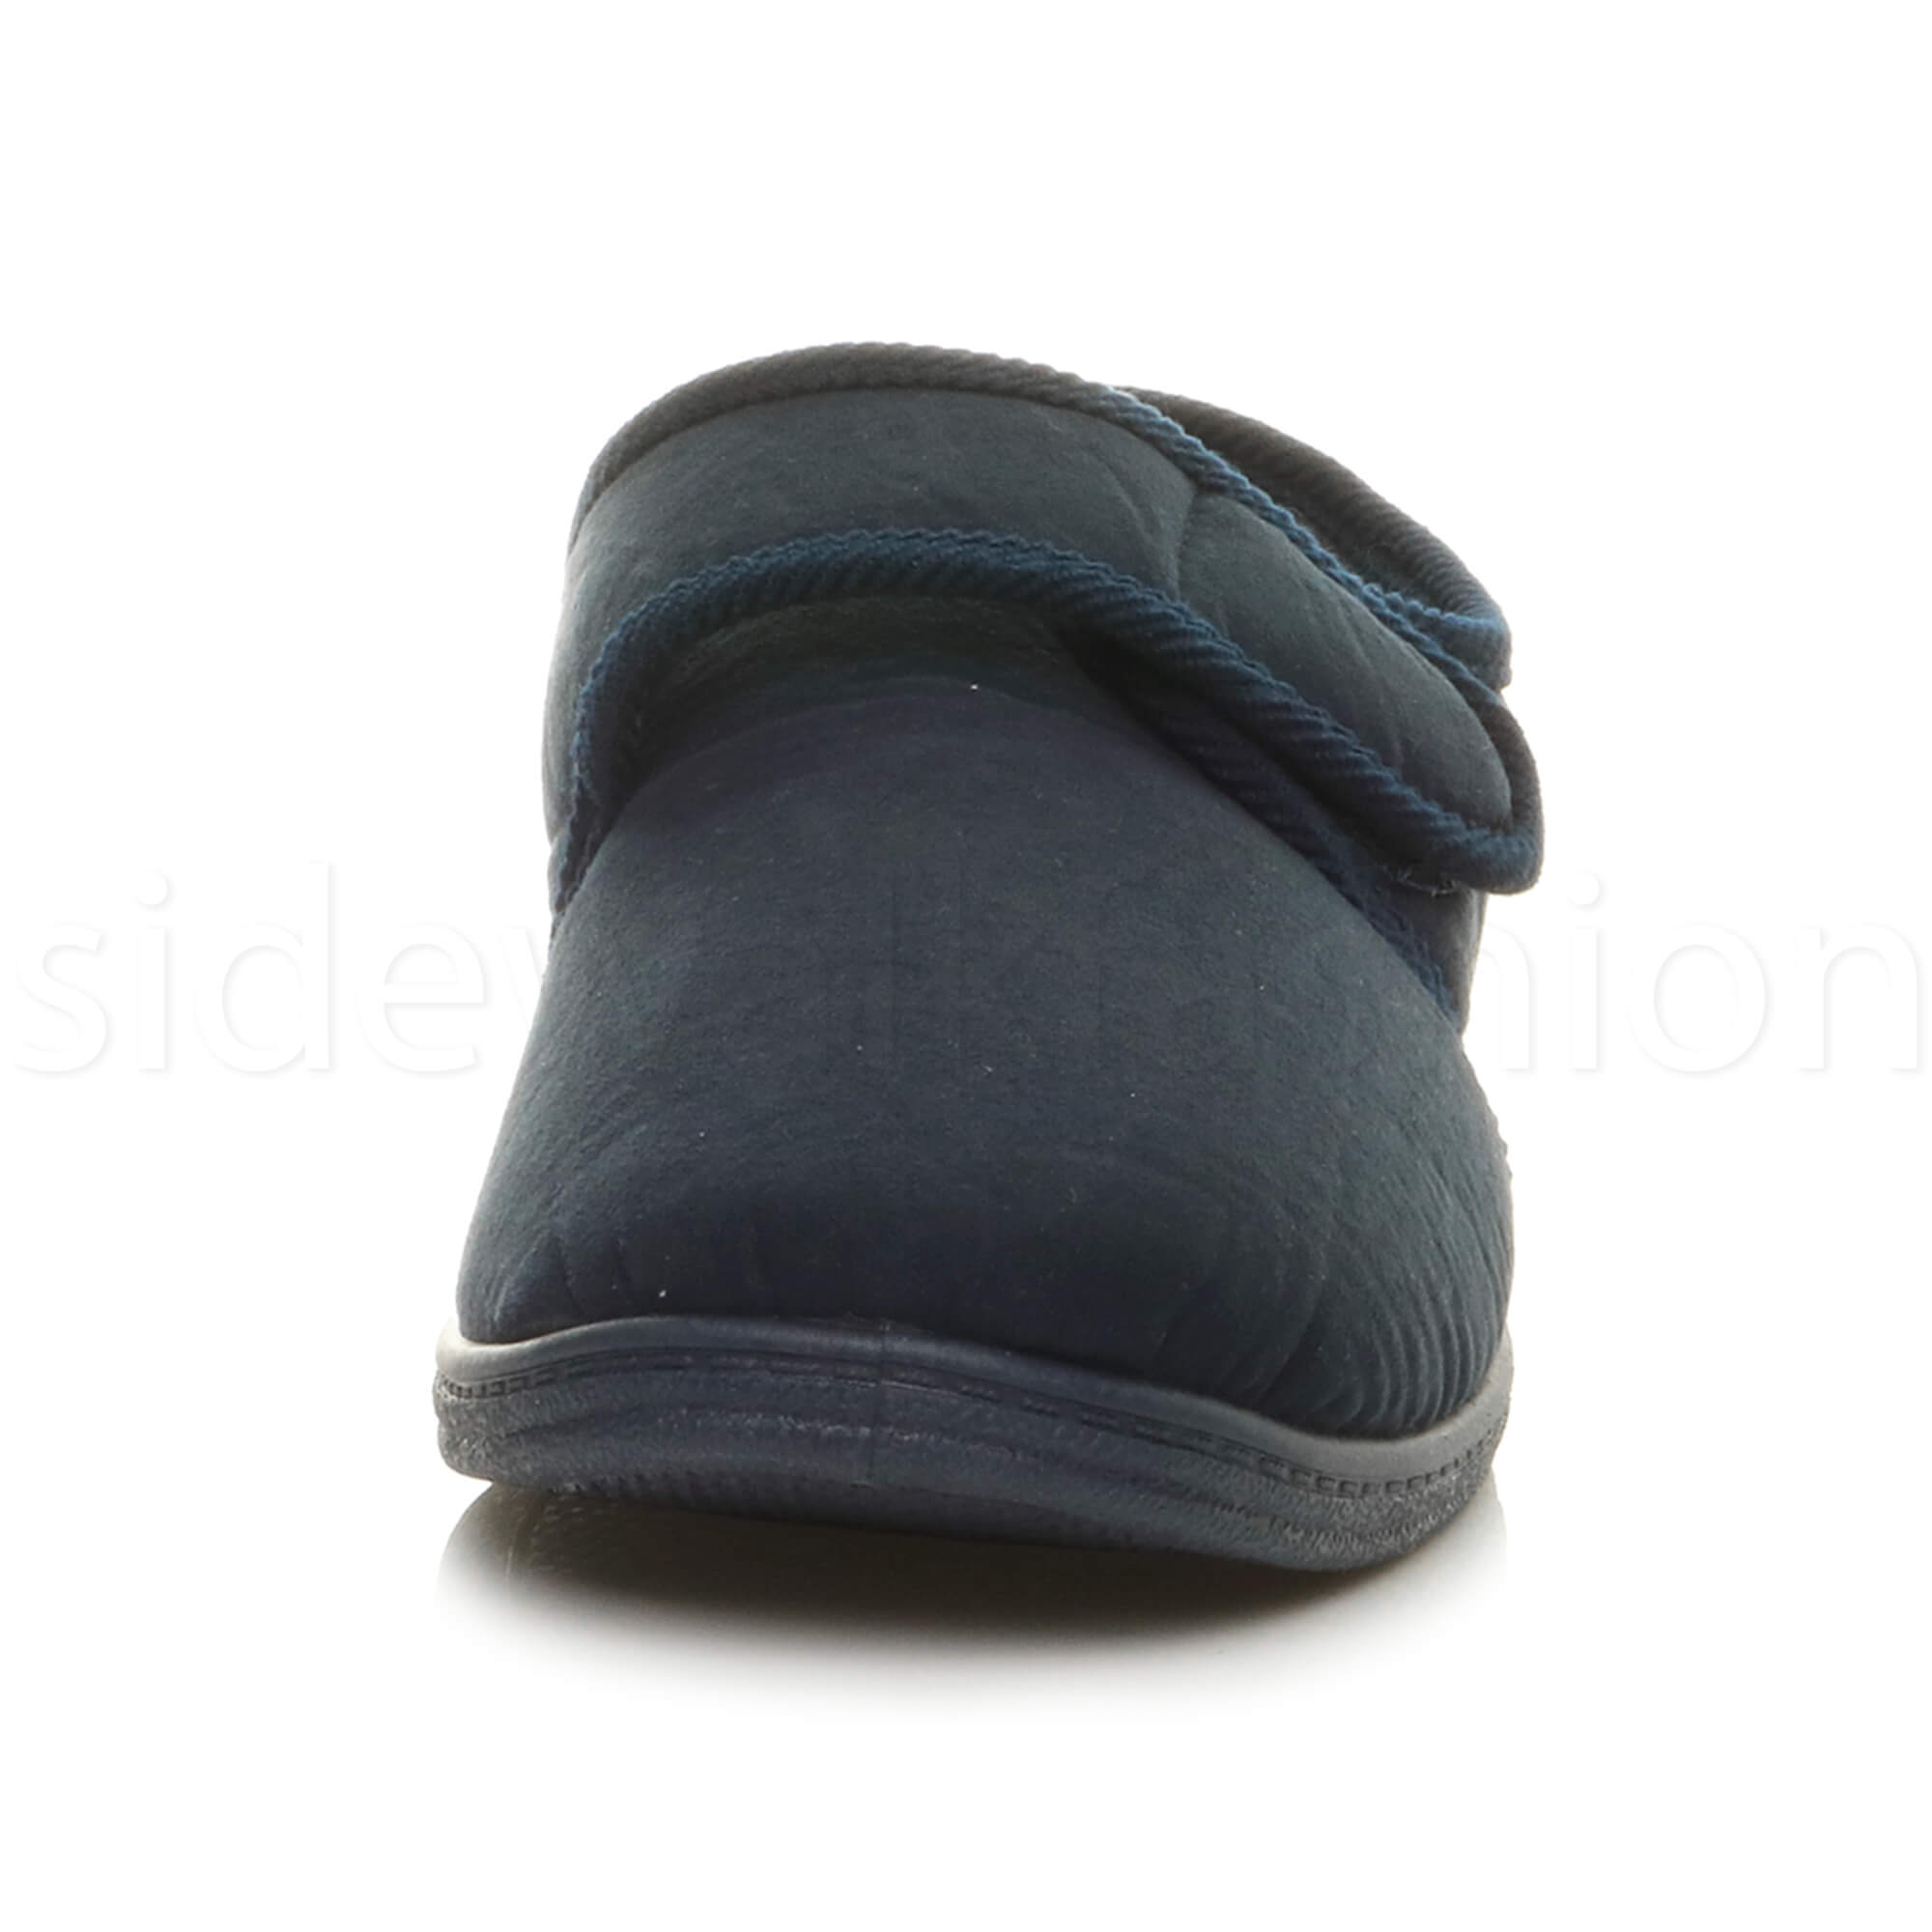 MENS-TOUCH-CLOSE-COMFORT-DIABETIC-ORTHOPAEDIC-SLIPPERS-INDOOR-HOUSE-SHOES-SIZE miniatuur 23